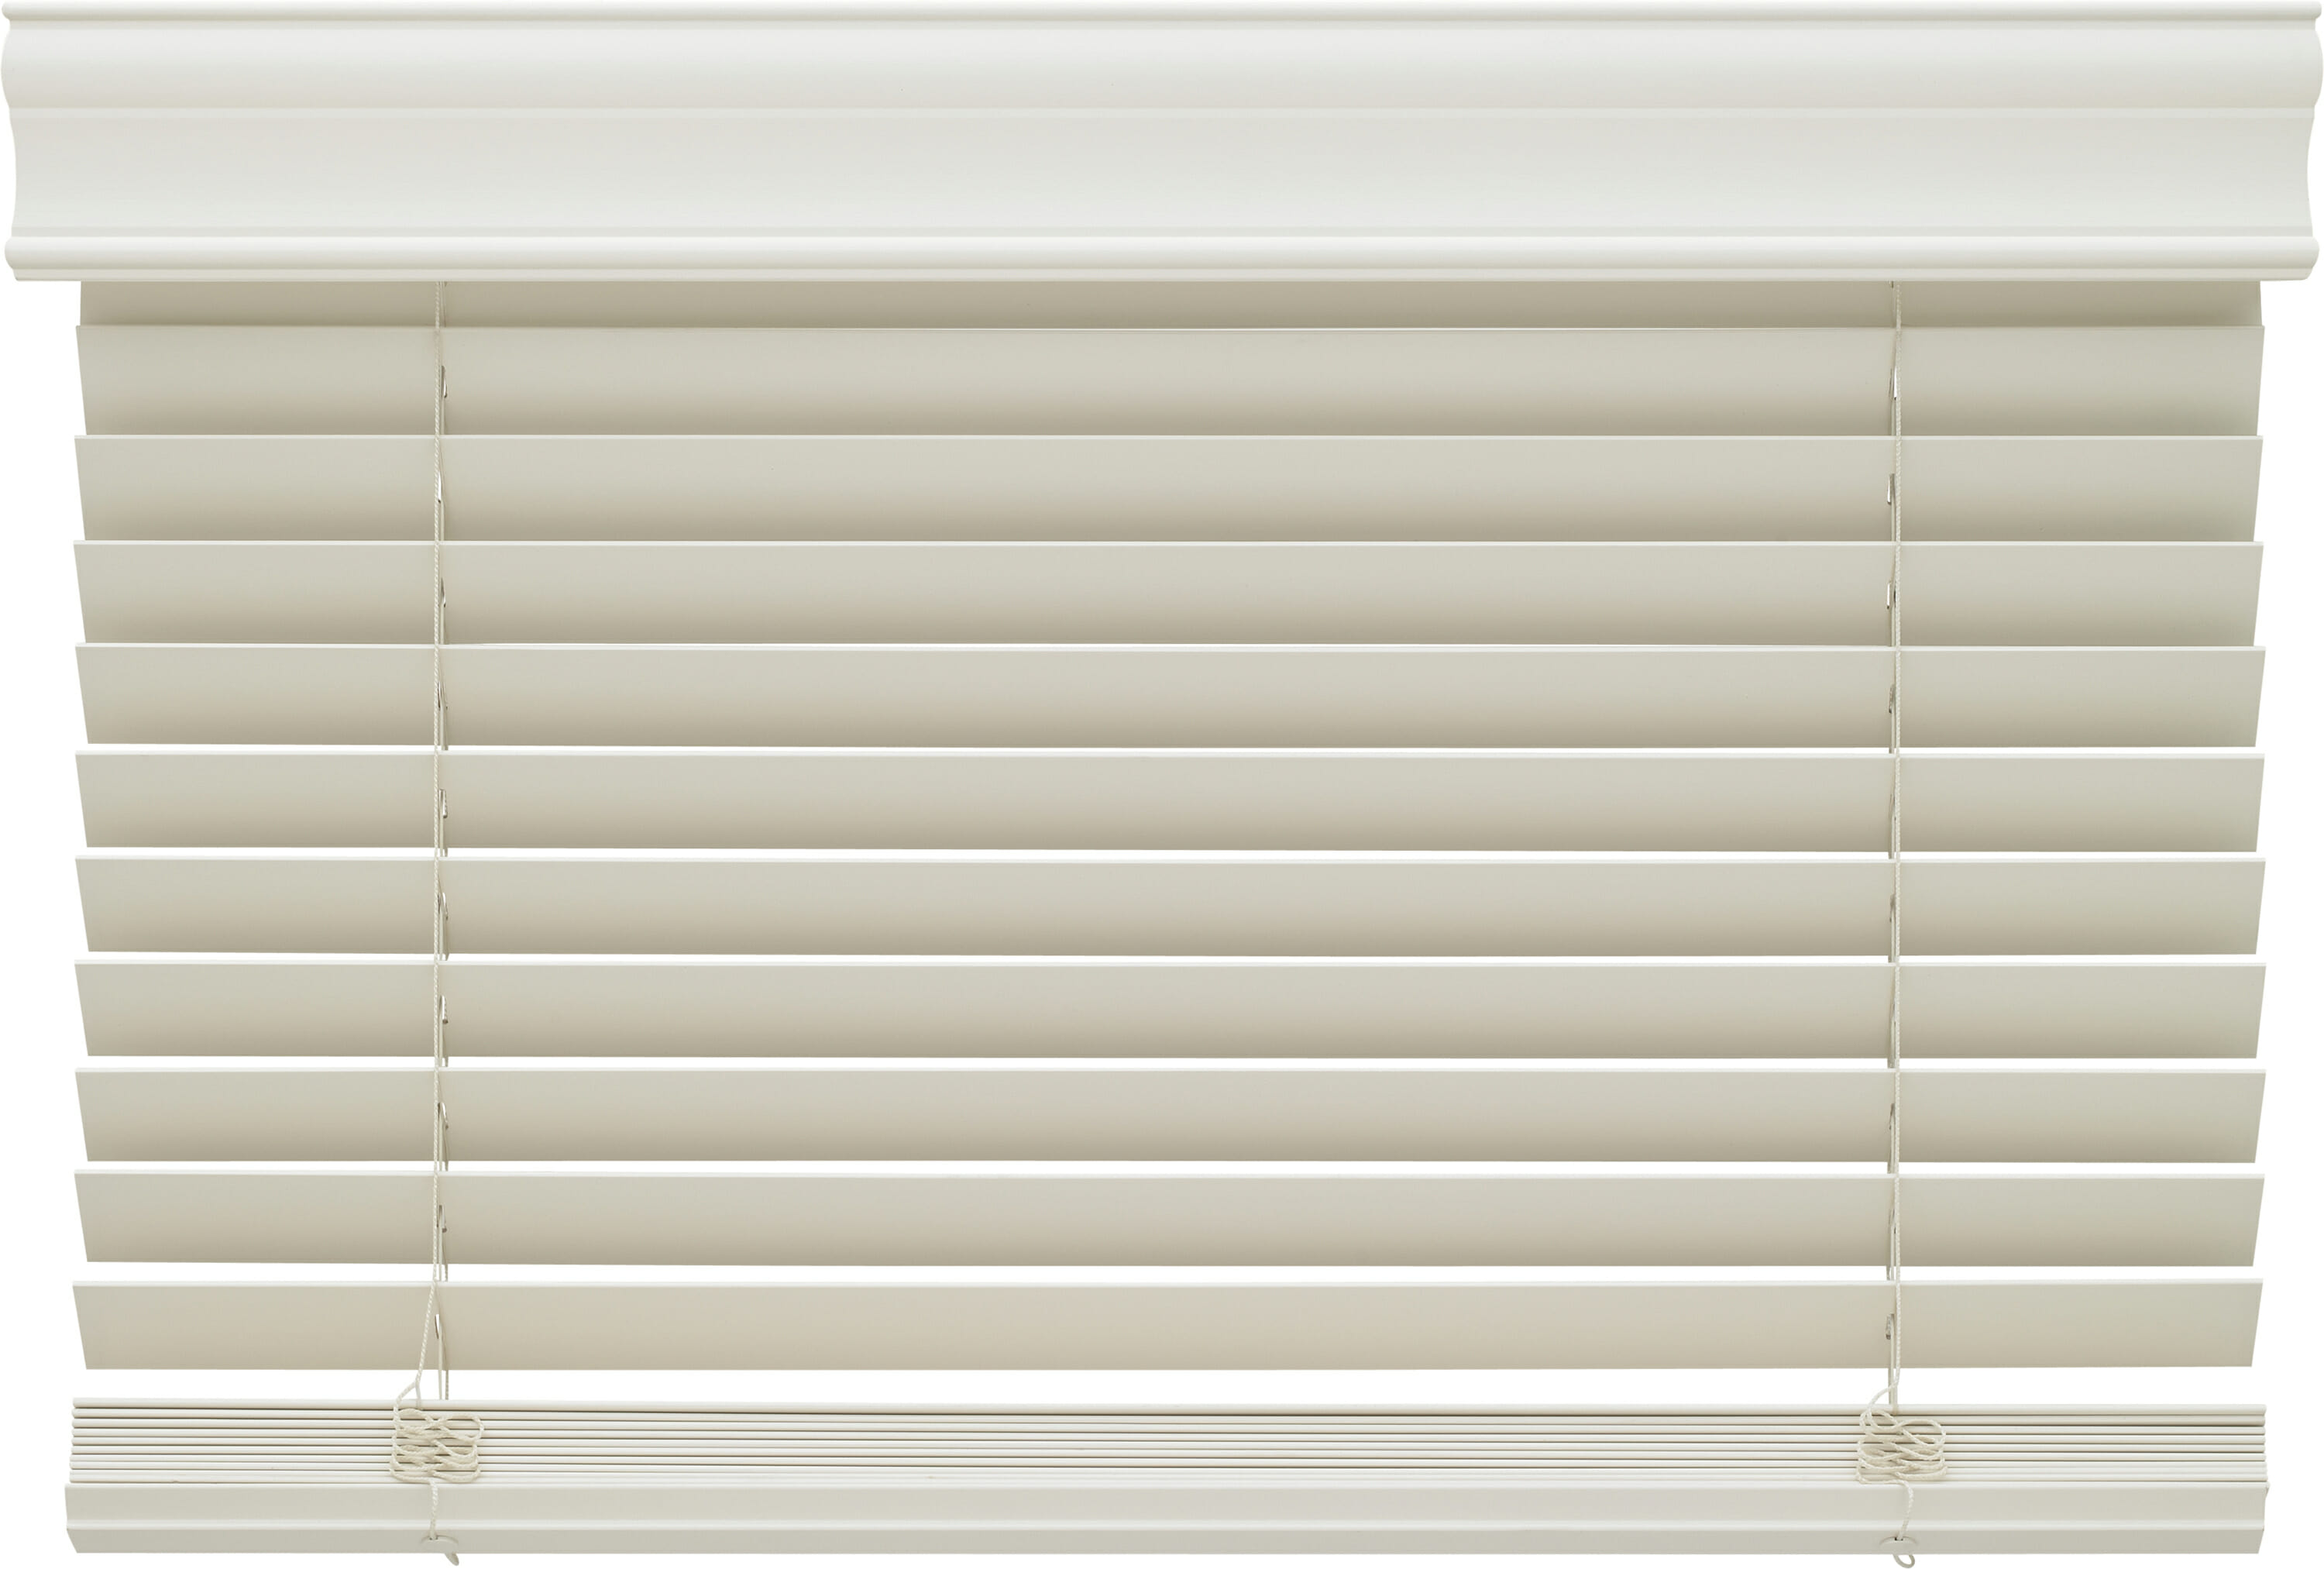 blinds easy install etc for steel snap metal x mini blind white window collections windows amazon magnetic dp off quick door com on